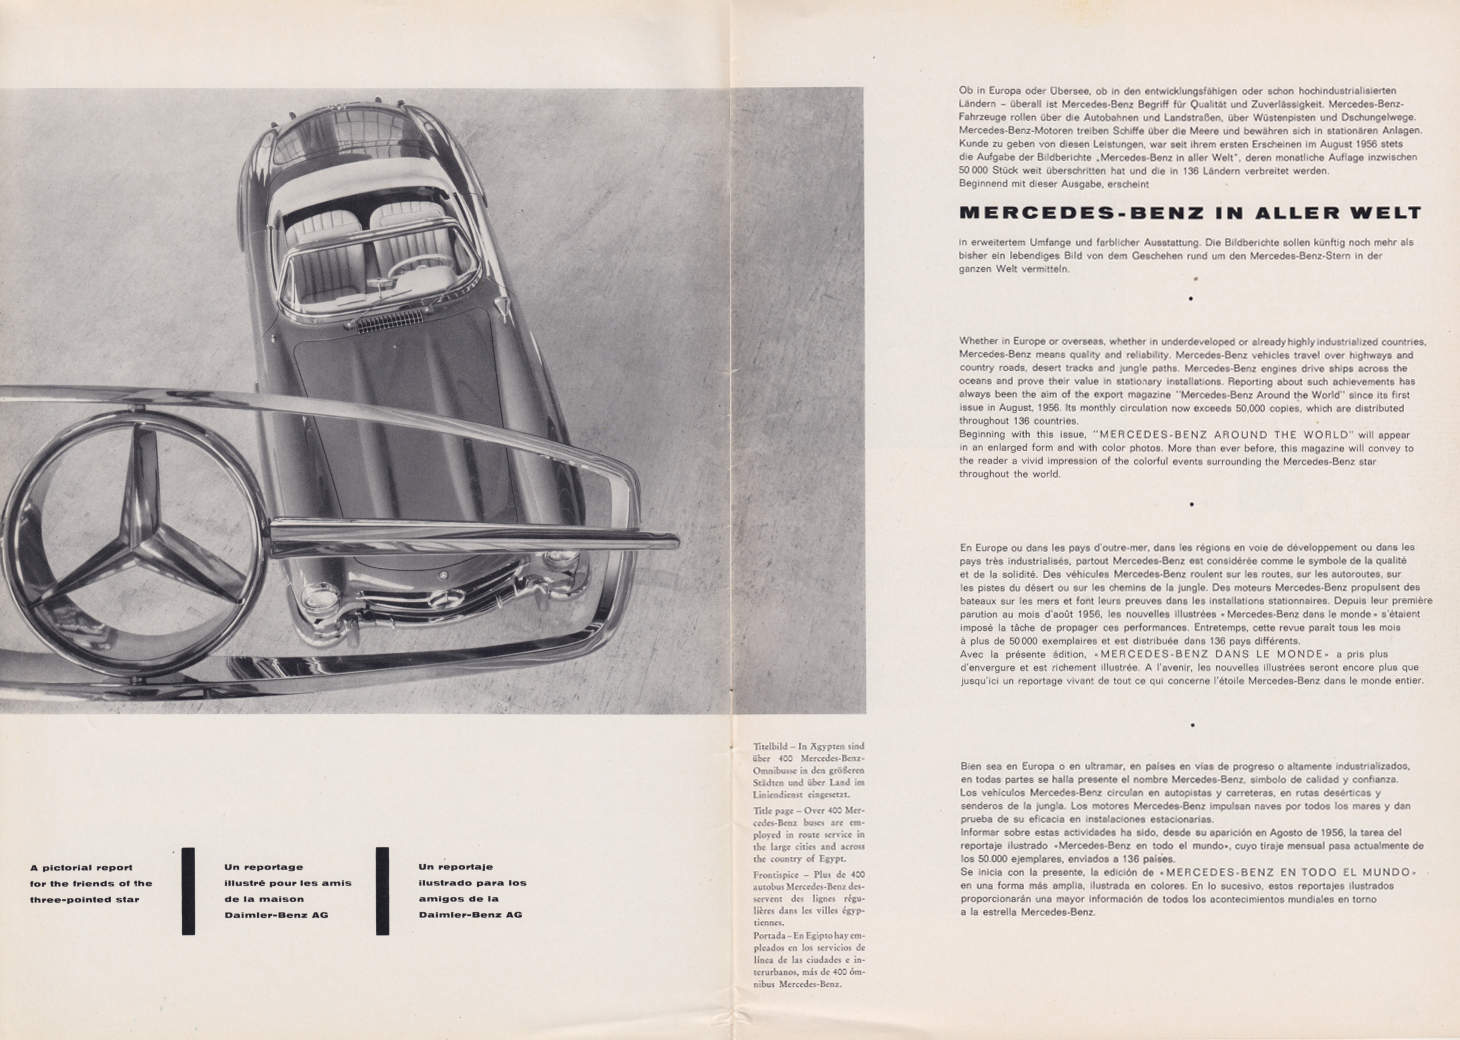 (REVISTA): Periódico In aller welt n.º 29 - Mercedes-Benz no mundo - 1959 - multilingue 002